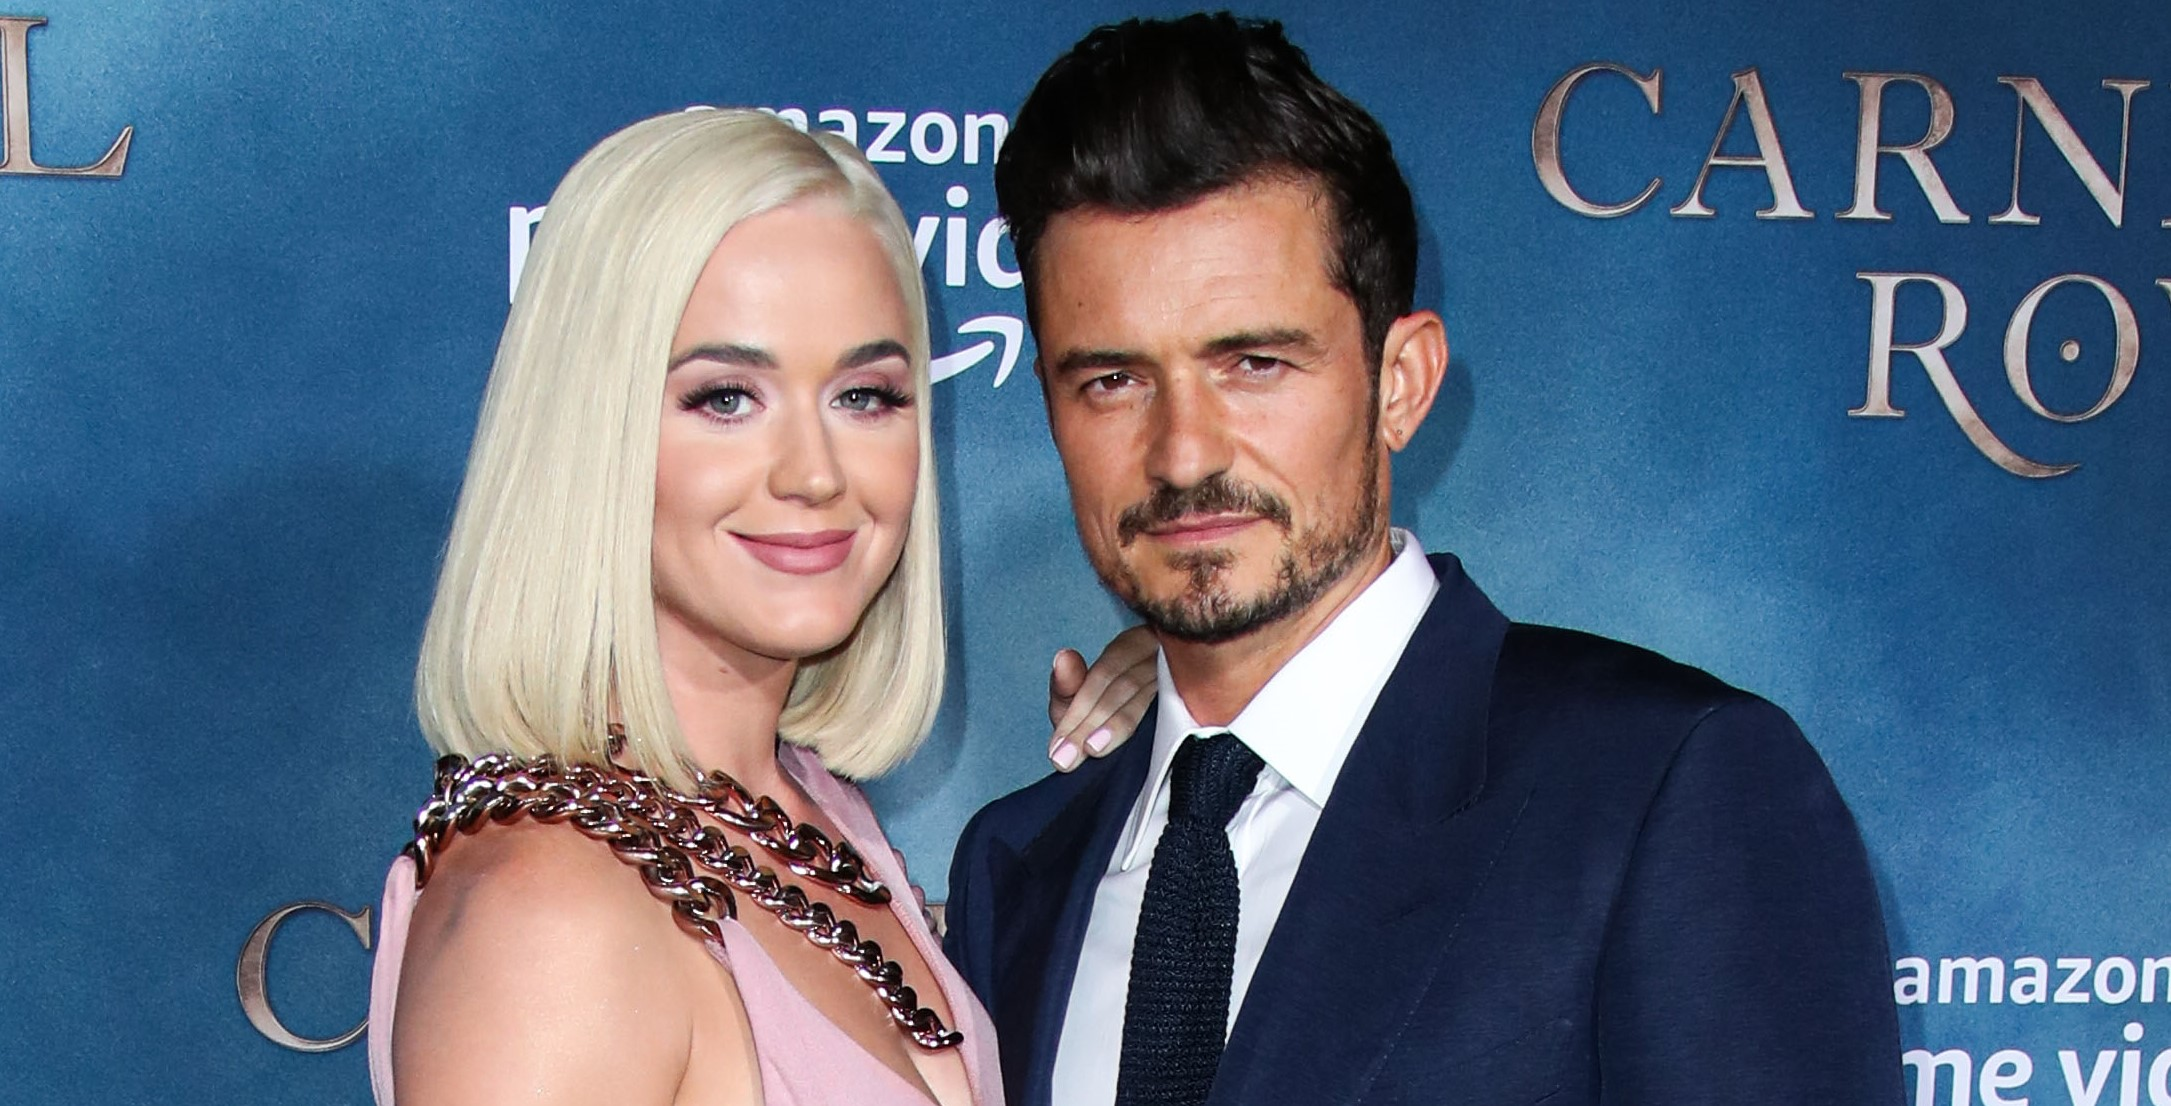 Pop star Katy Perry reveals a happy secret - she's pregnant